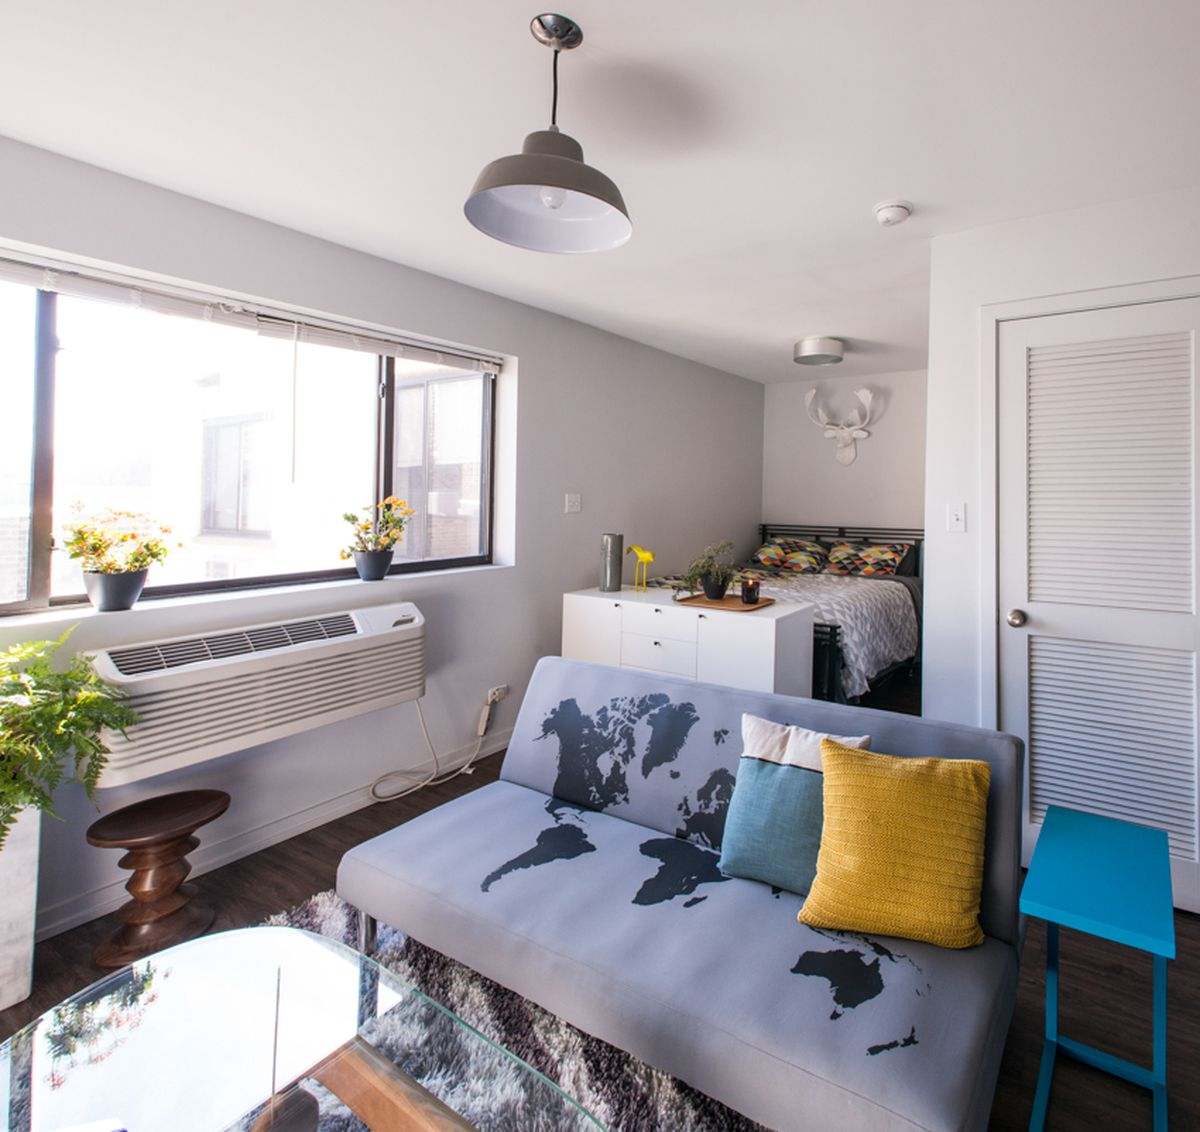 Rent A Studio Apartment: How To Live Large In A 500 Square Foot Studio Apartment